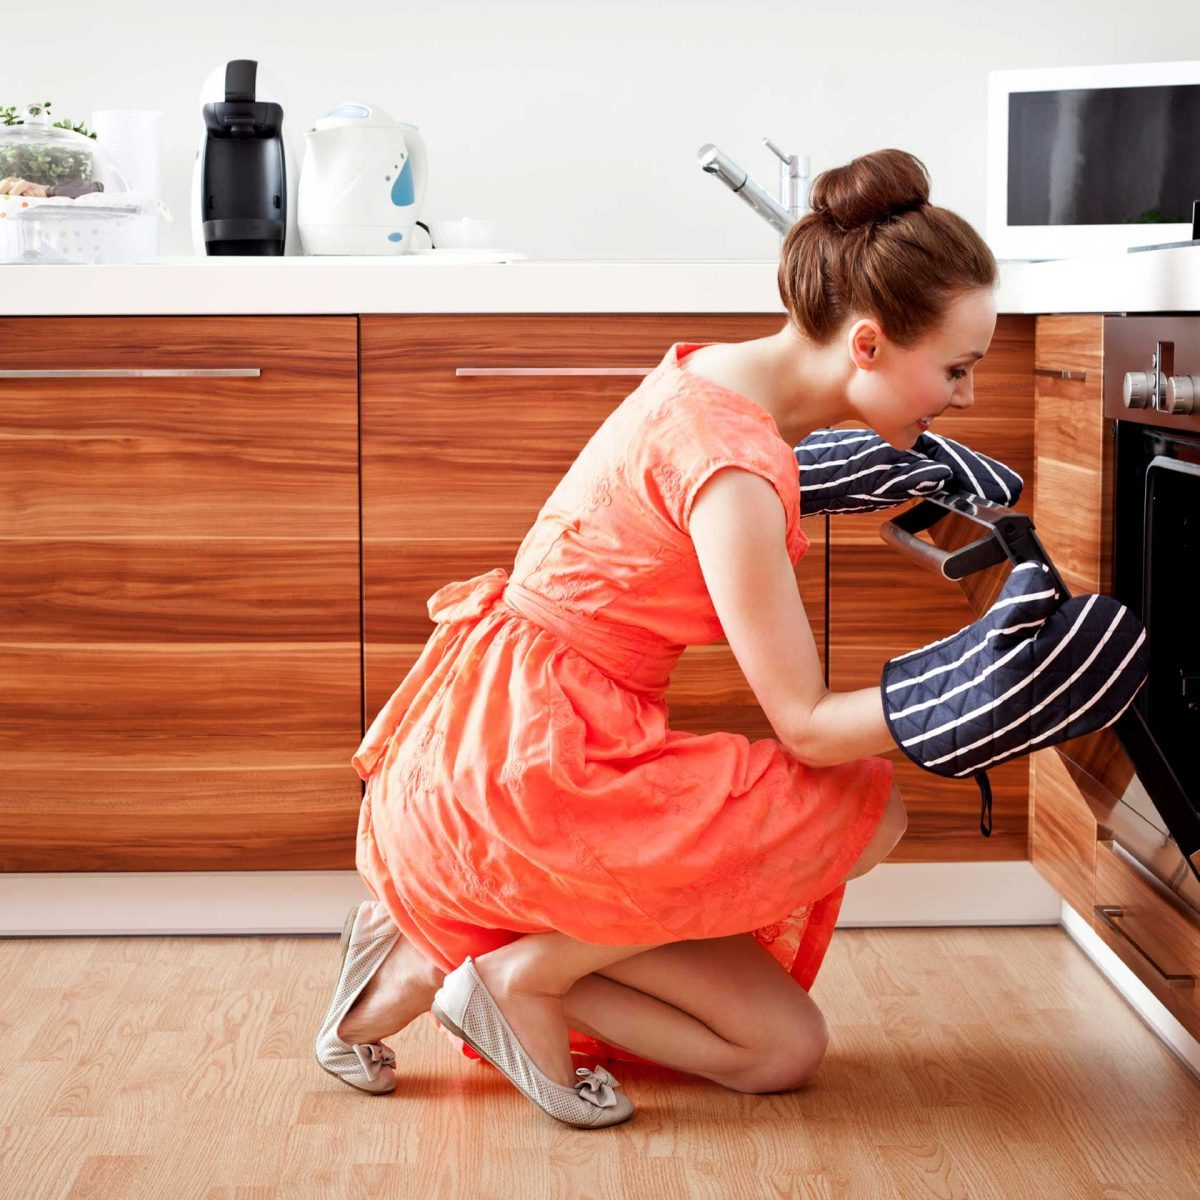 How to Clean an Oven: Best Homemade Oven Cleaners   Reader's